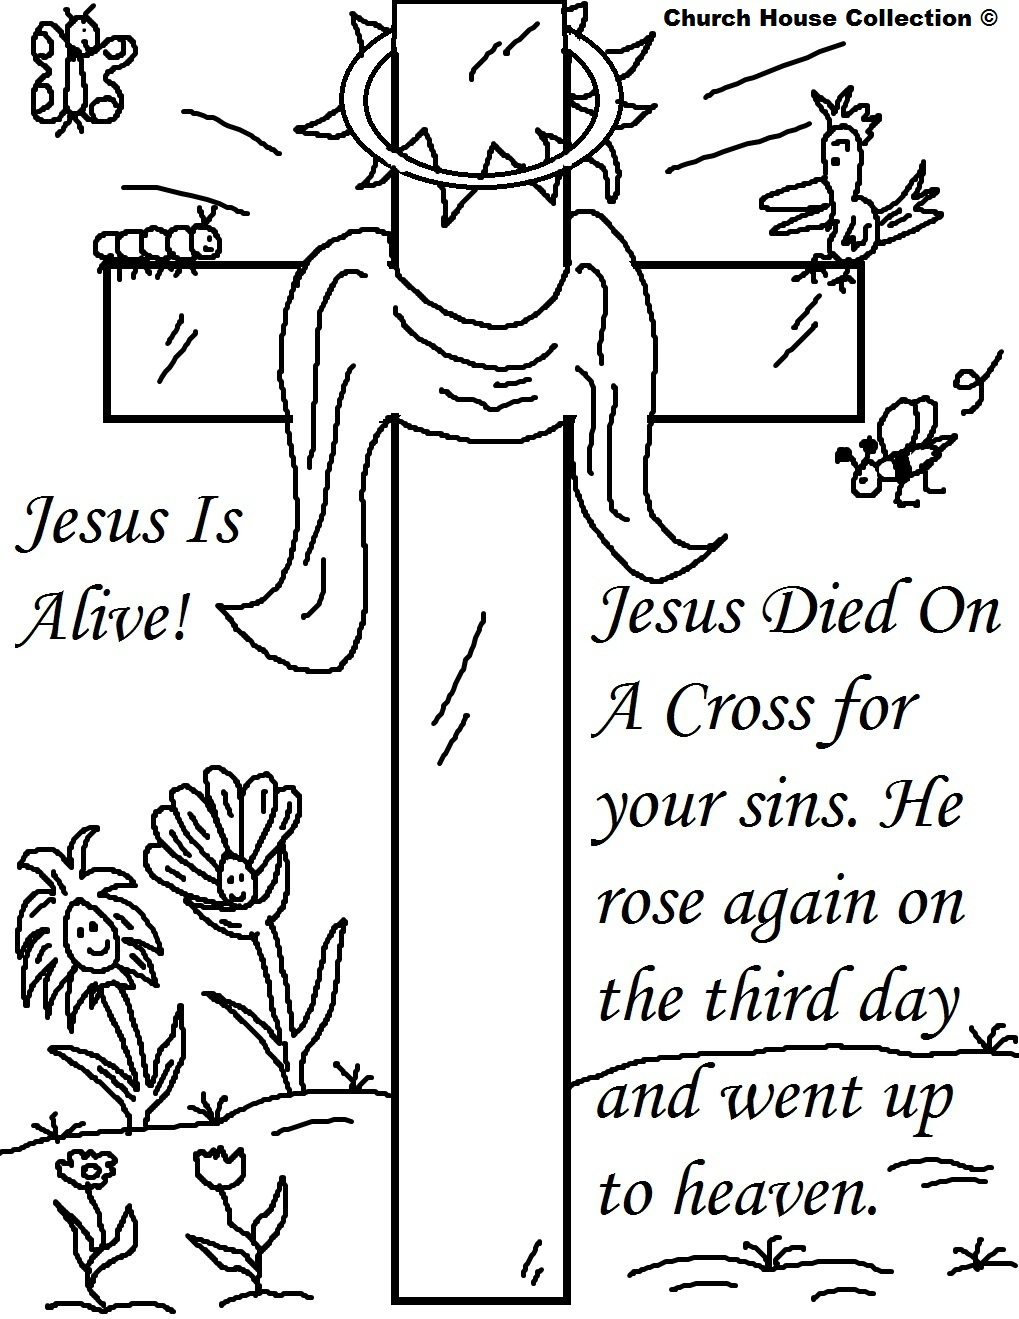 25 Religious Easter Coloring Pages | Free Easter Activity Printables - Free Printable Easter Coloring Pages